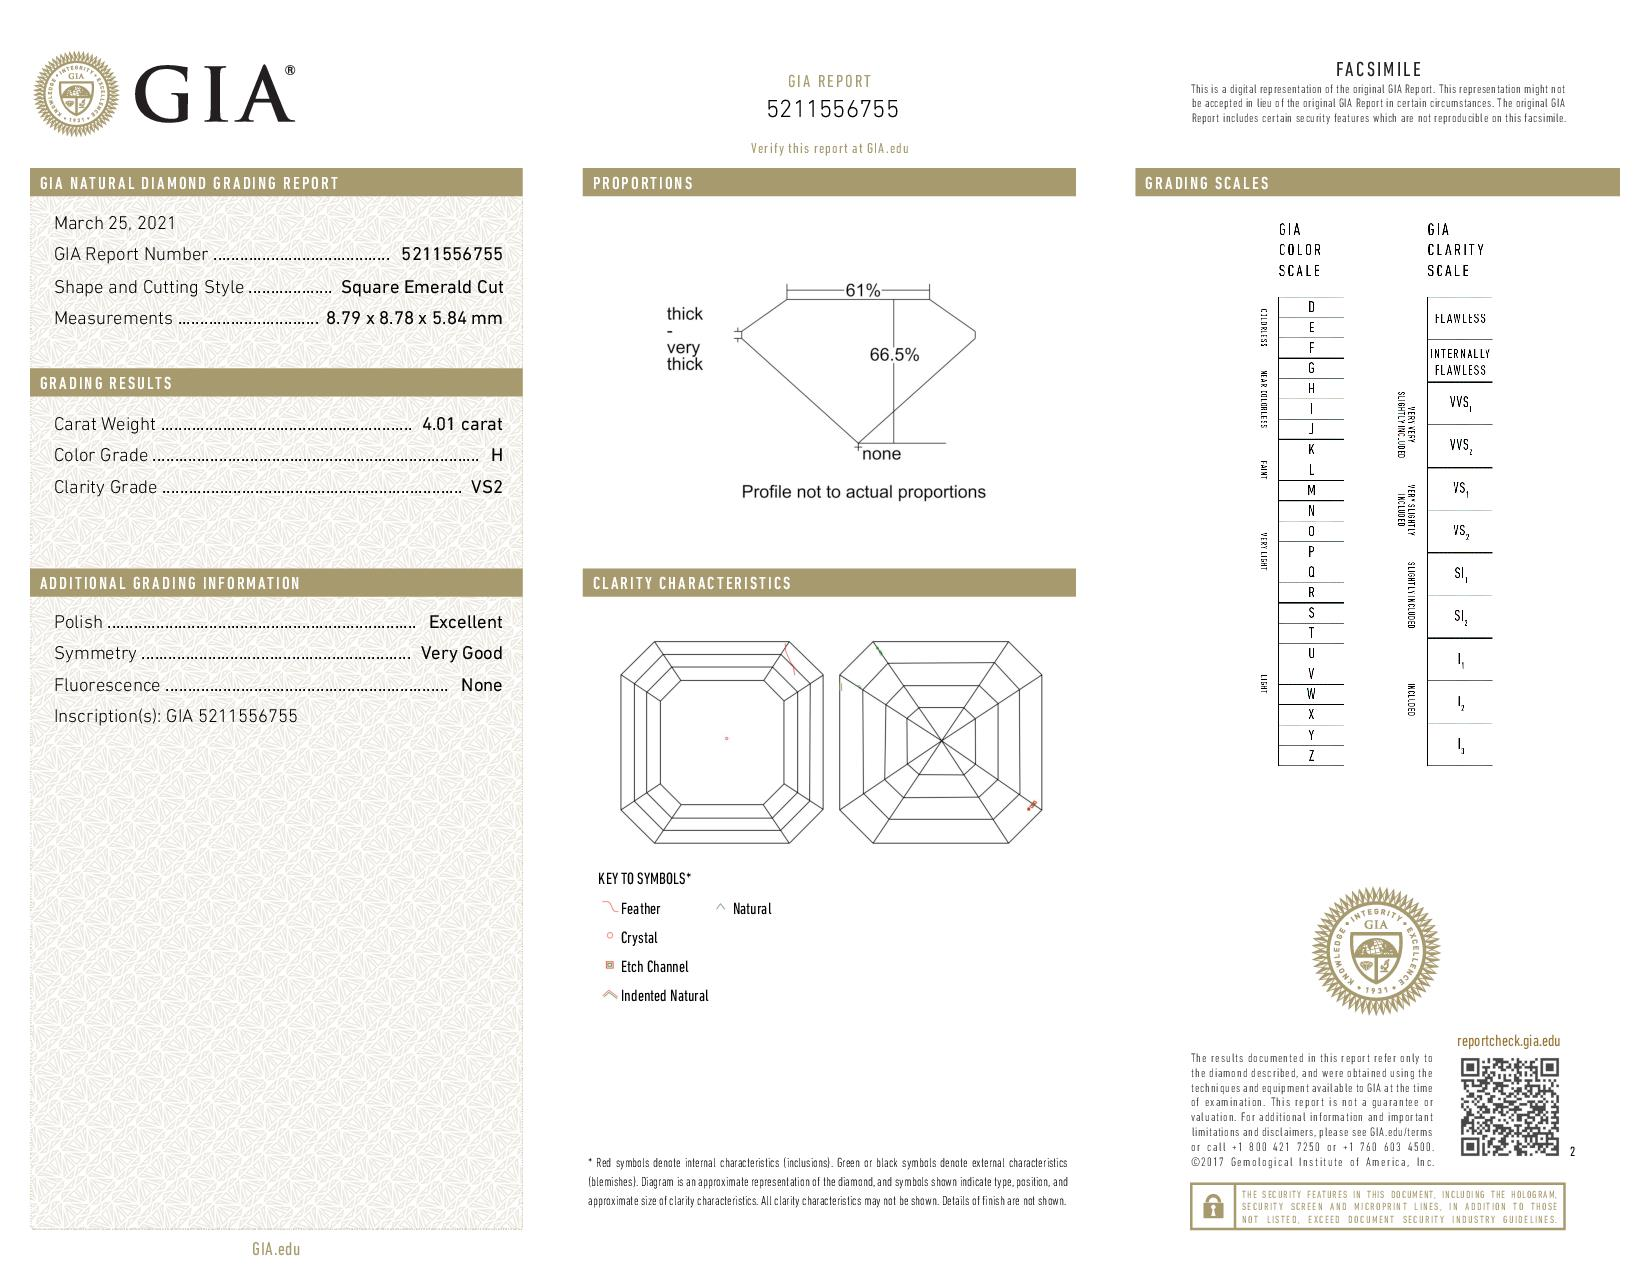 This is a 4.01 carat asscher shape, H color, VS2 clarity natural diamond accompanied by a GIA grading report.